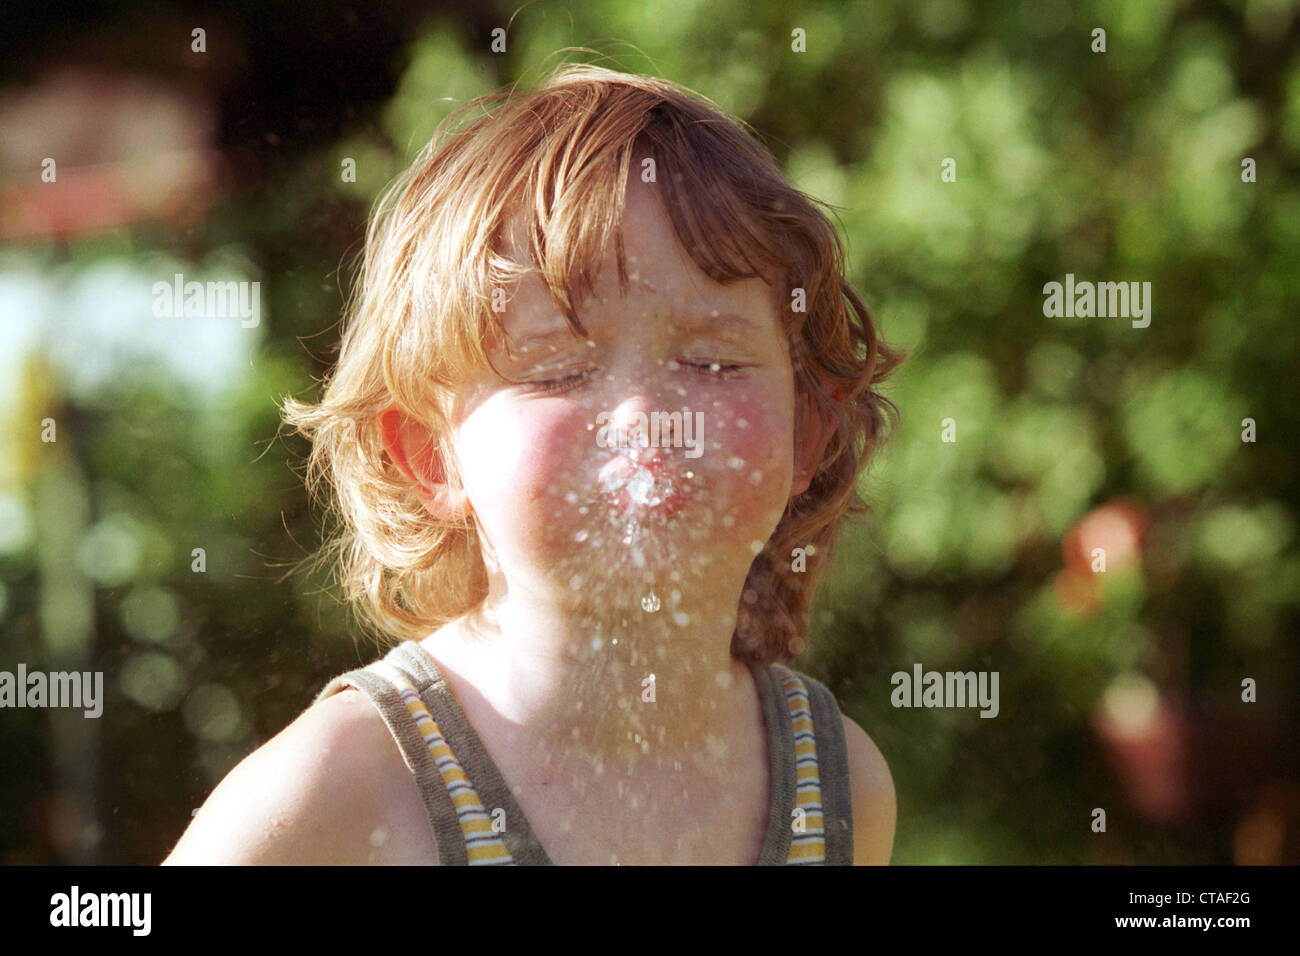 Berlin, a child playing with water - Stock Image